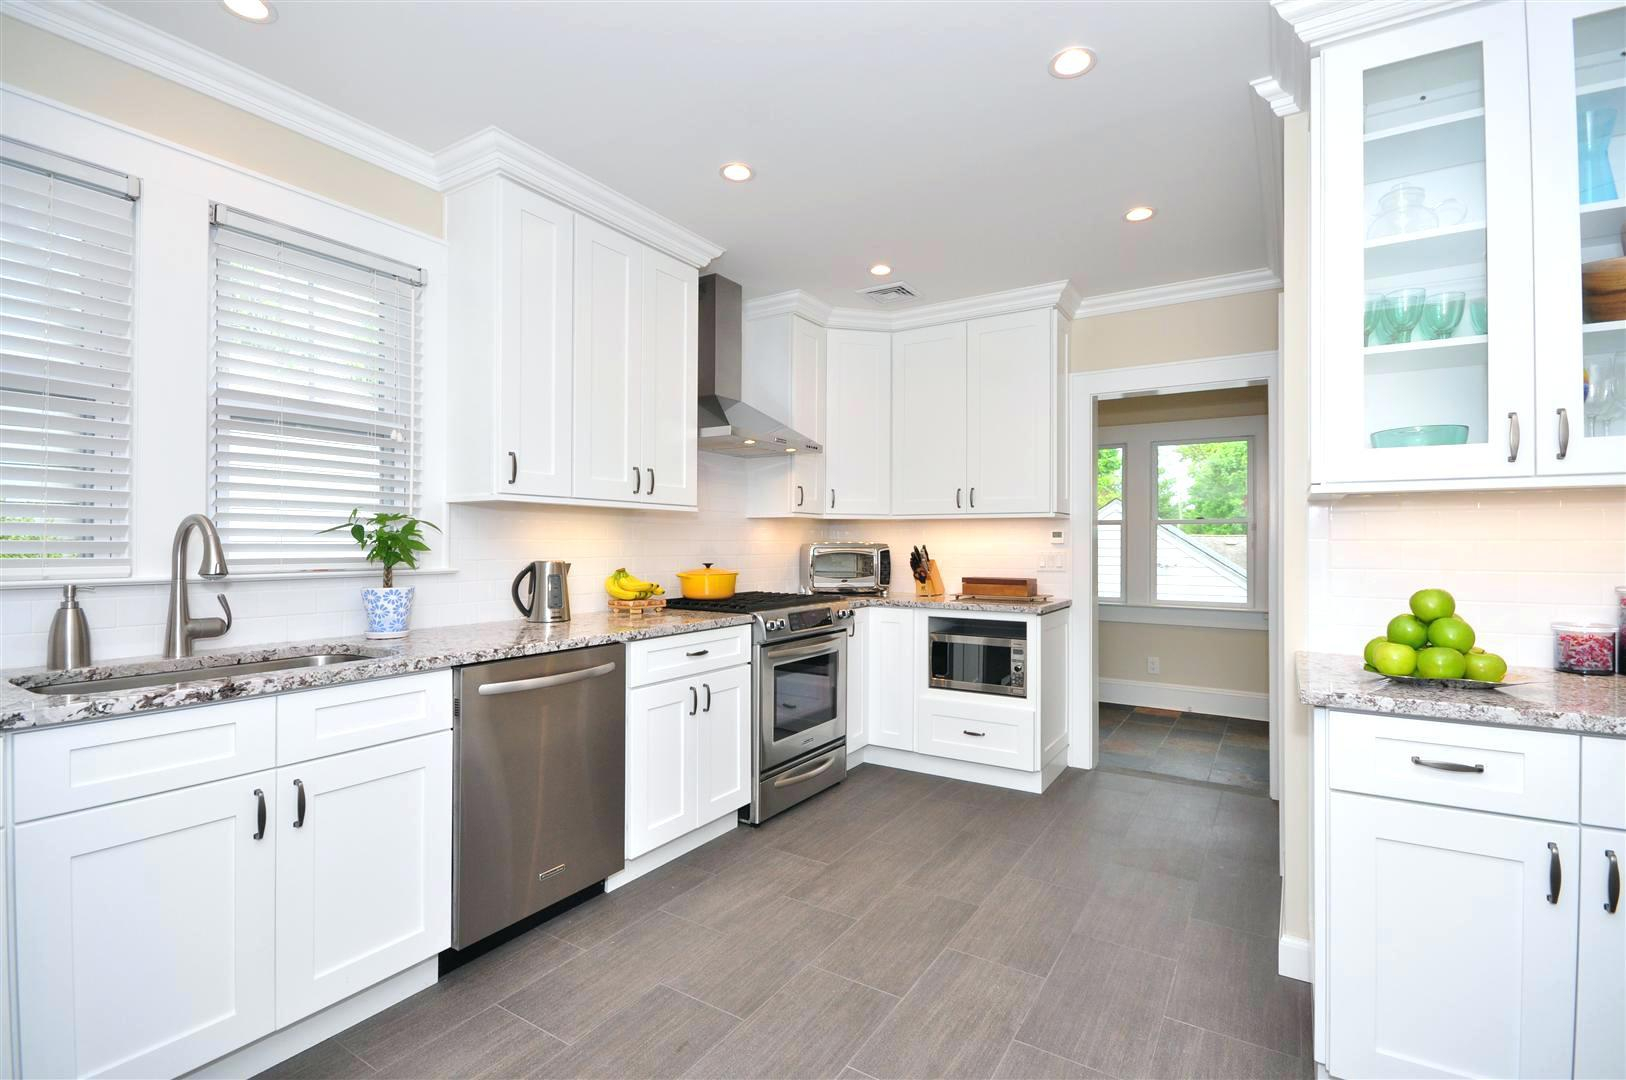 Awesome Wenge White Shaker Kitchen Cabinet Doors Pict For ...